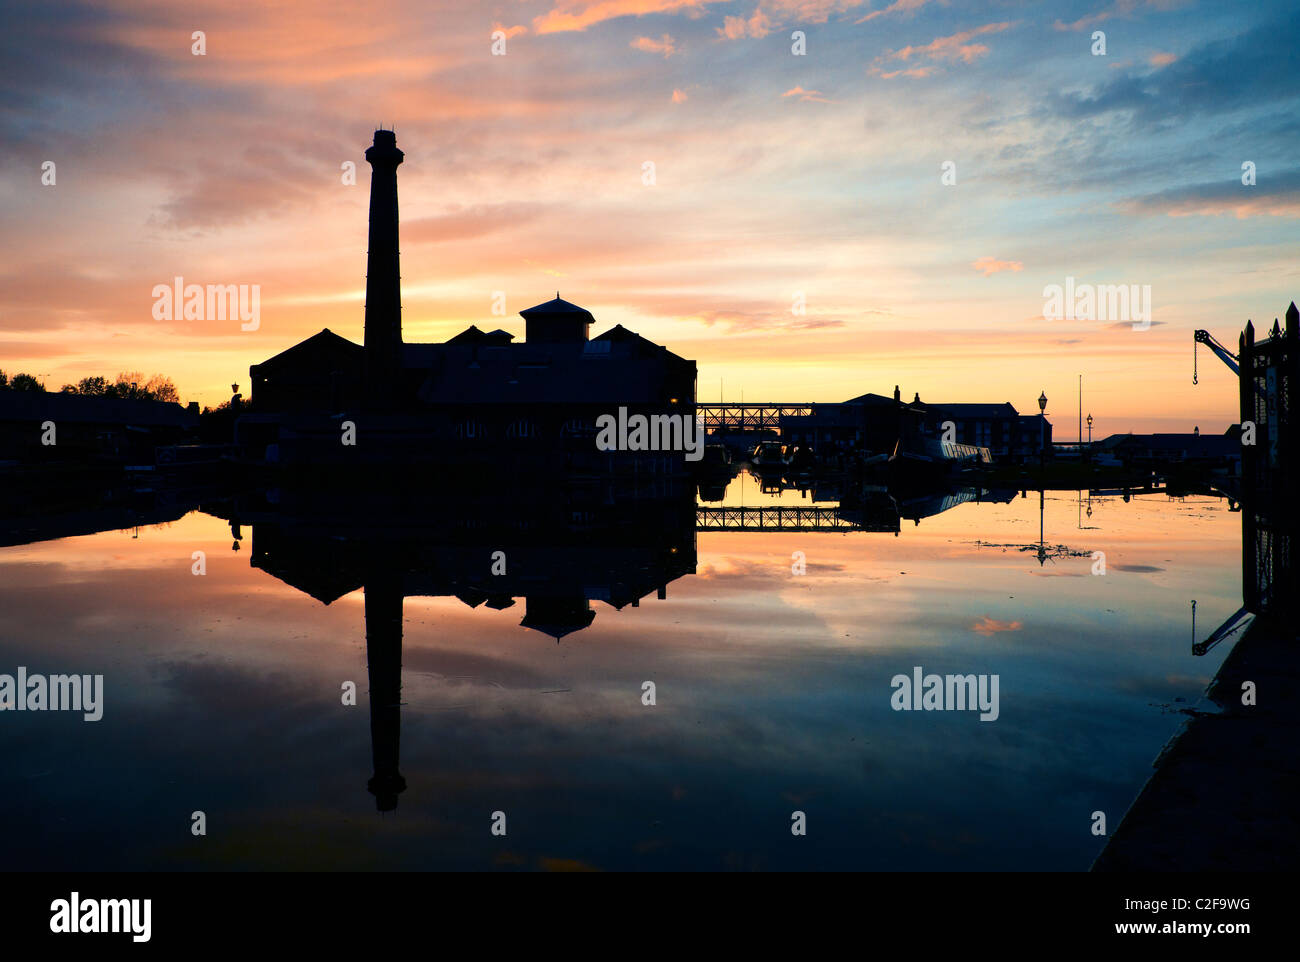 Ellesmere Port Boat Museum silhouetted during a colourful sunset - Stock Image